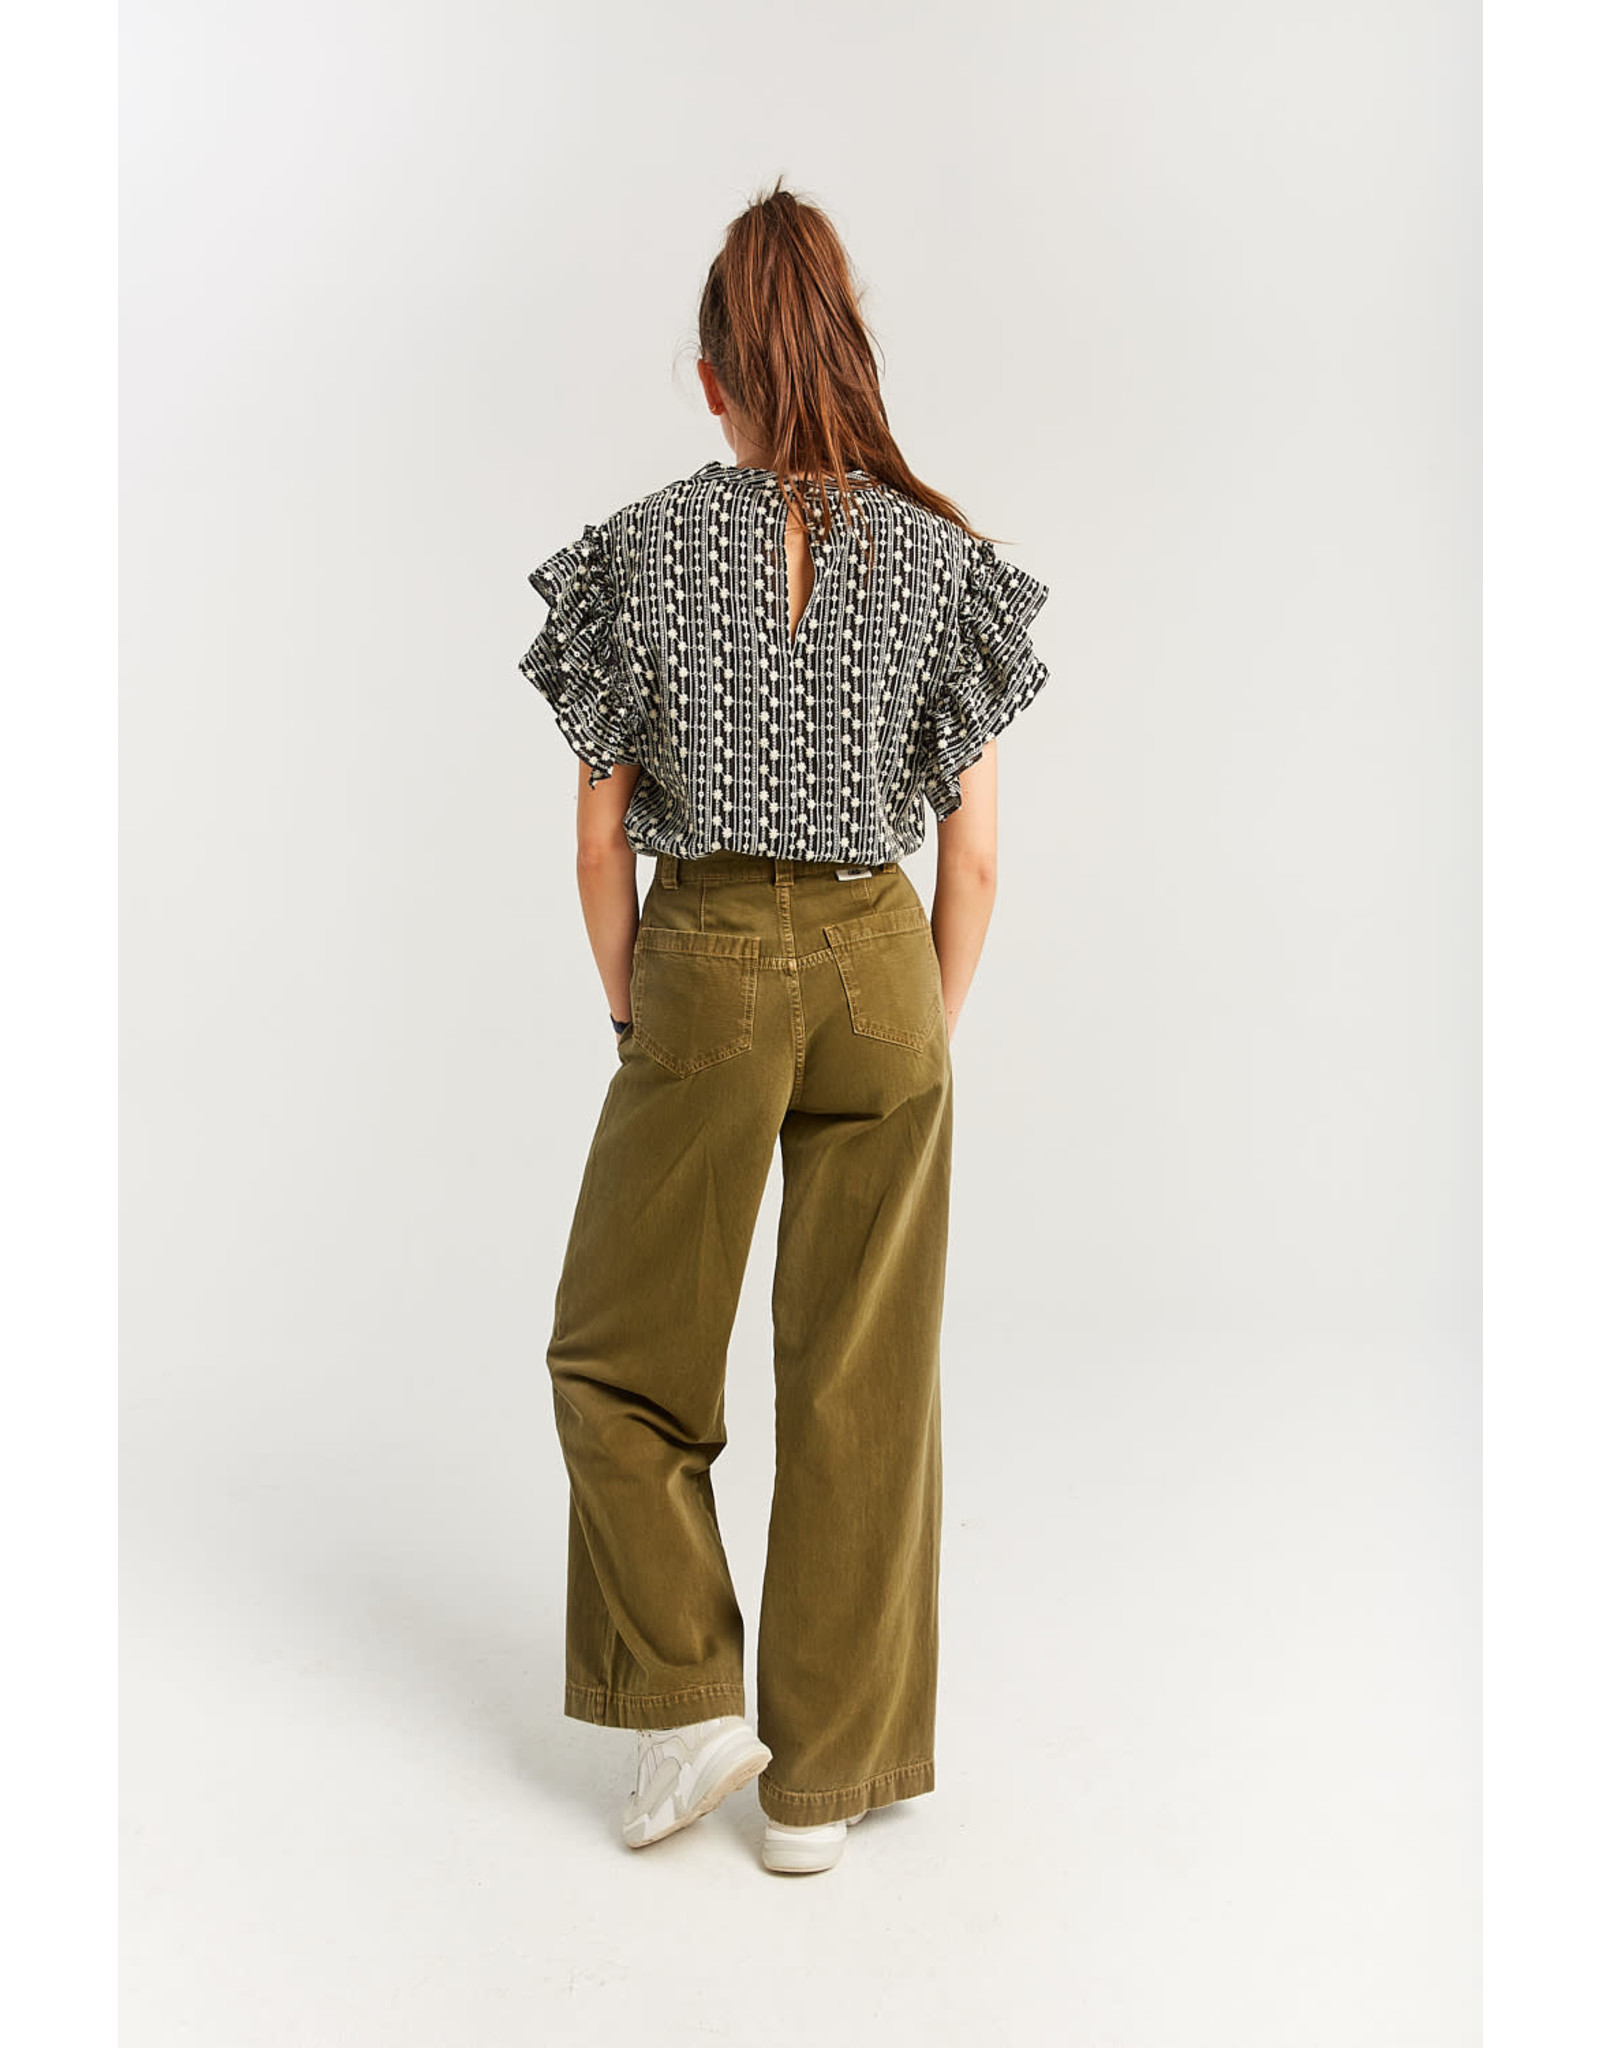 INDEE FW21 Kyoto trousers army green